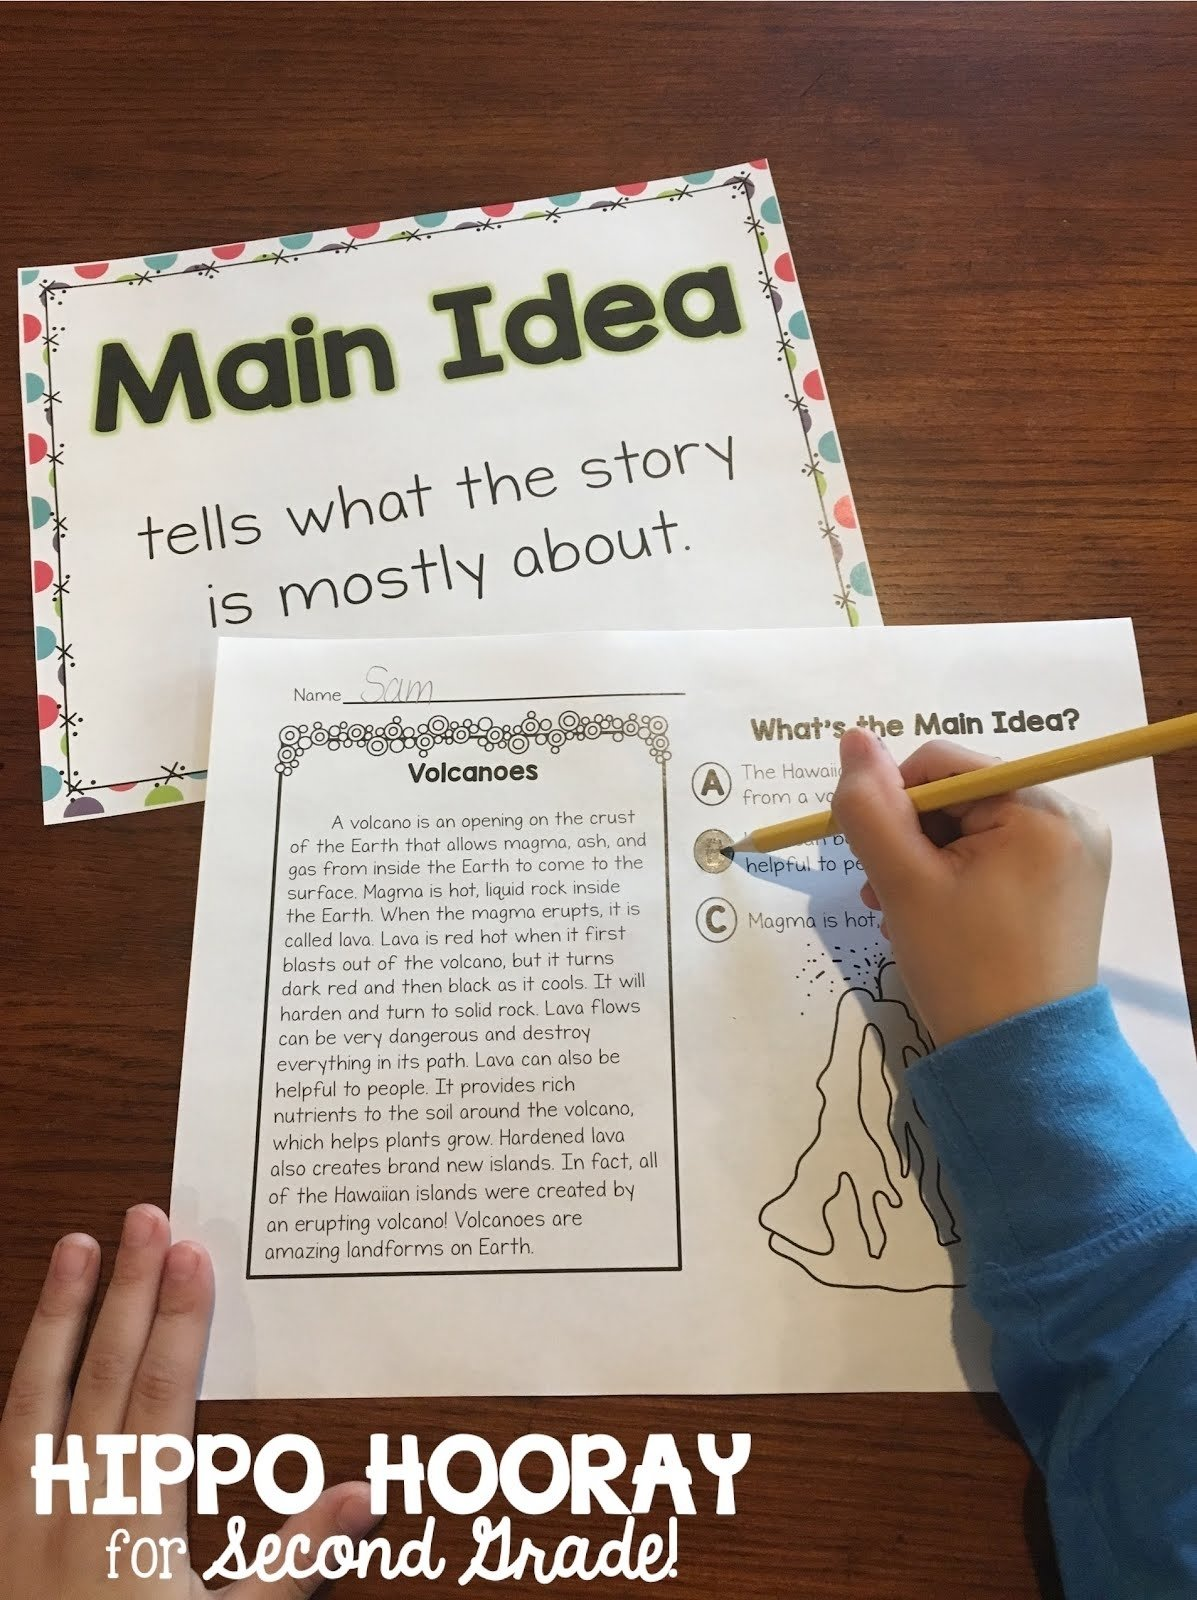 10 Elegant How To Find The Main Idea Of A Story teaching main idea in nonfiction texts hippo hooray for second grade 1 2020